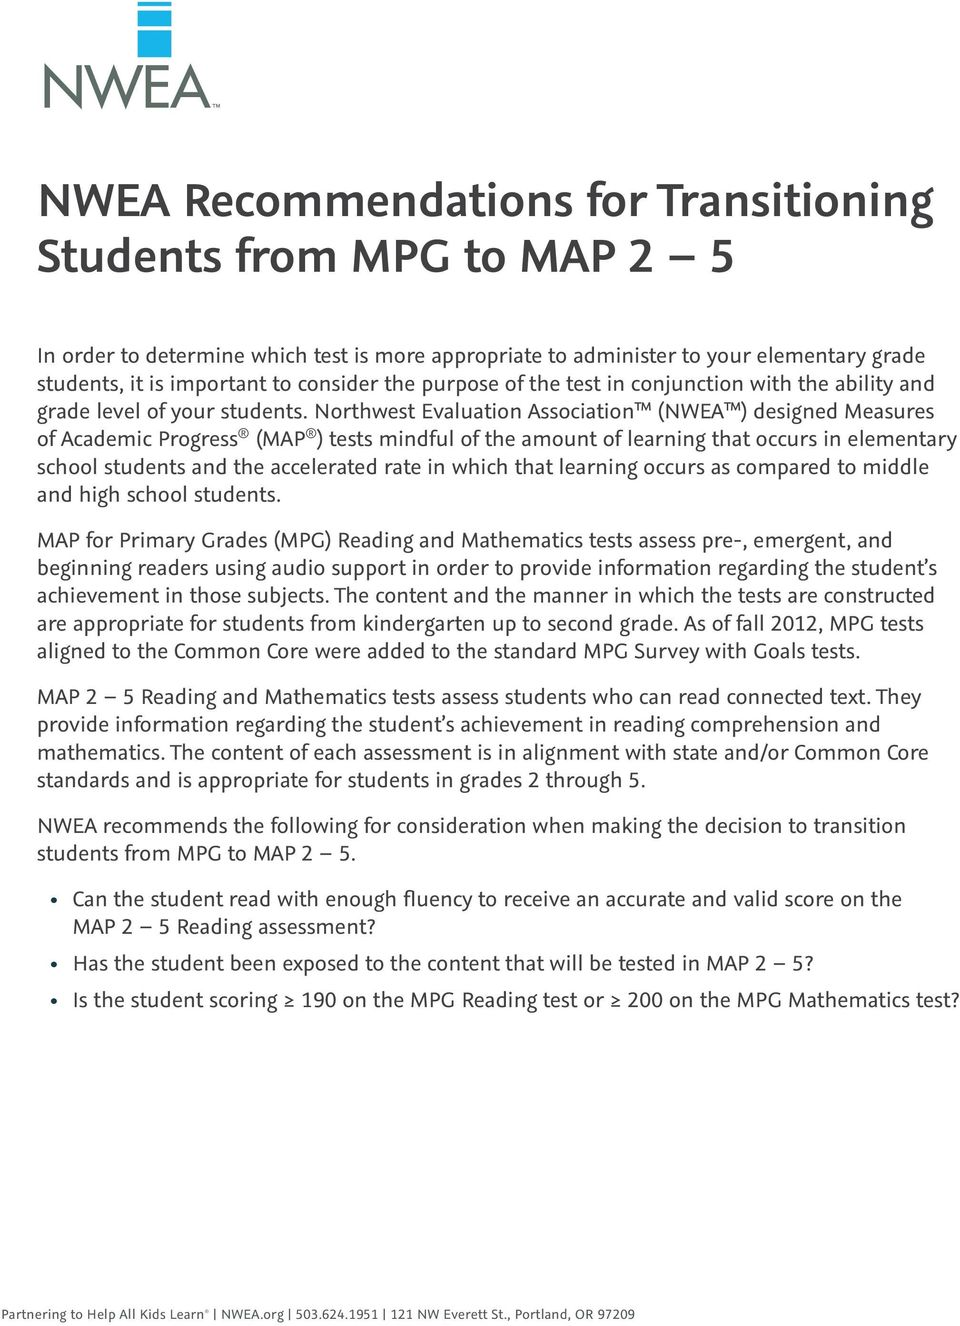 NWEA Recommendations for Transitioning Students from MPG to